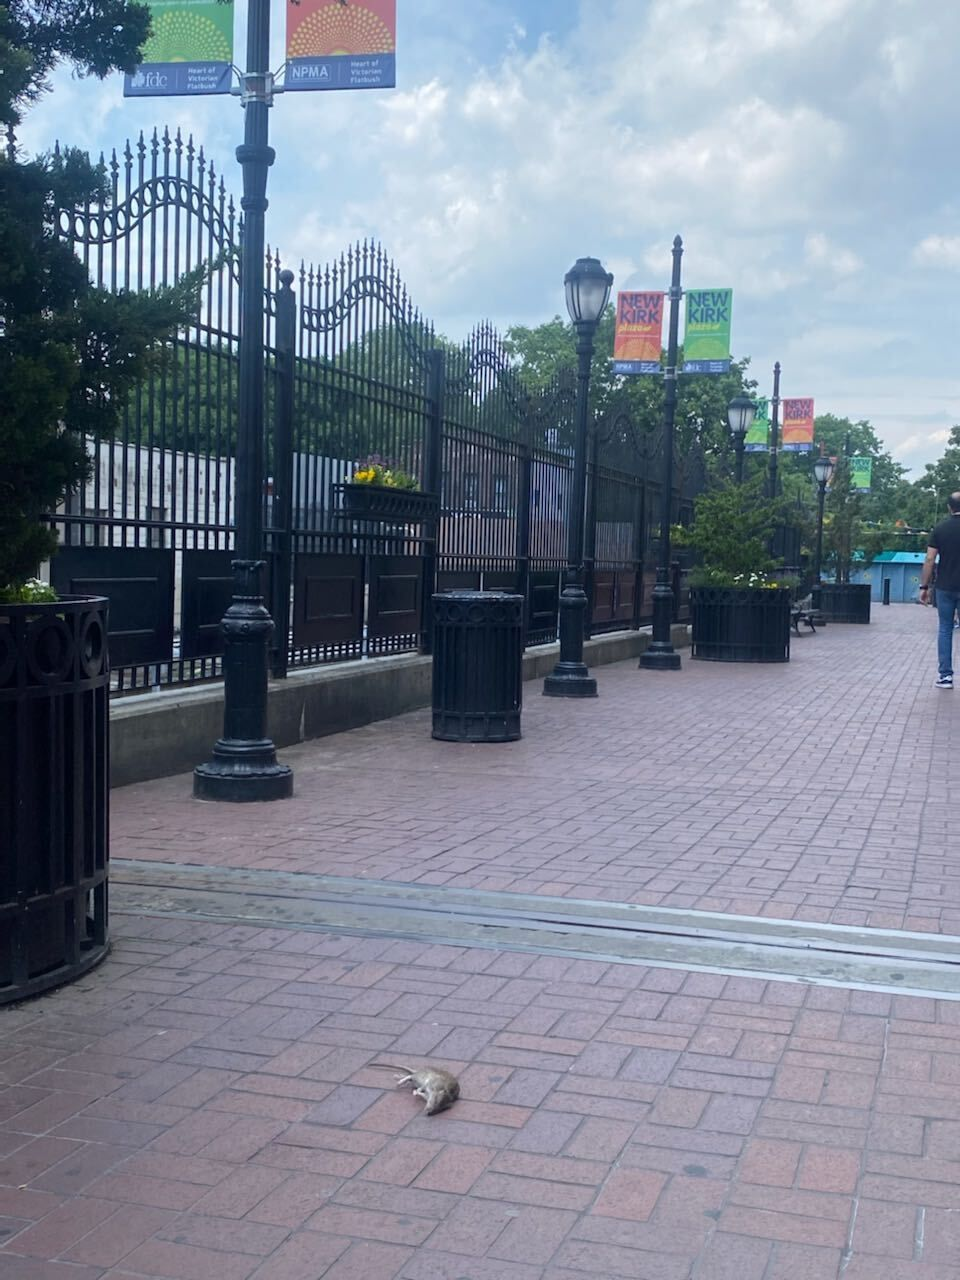 The owner of Almac Hardware, a longtime Newkirk Plaza business, took this photo of a dead rat in the middle of the pedestrian area next to the subway station.